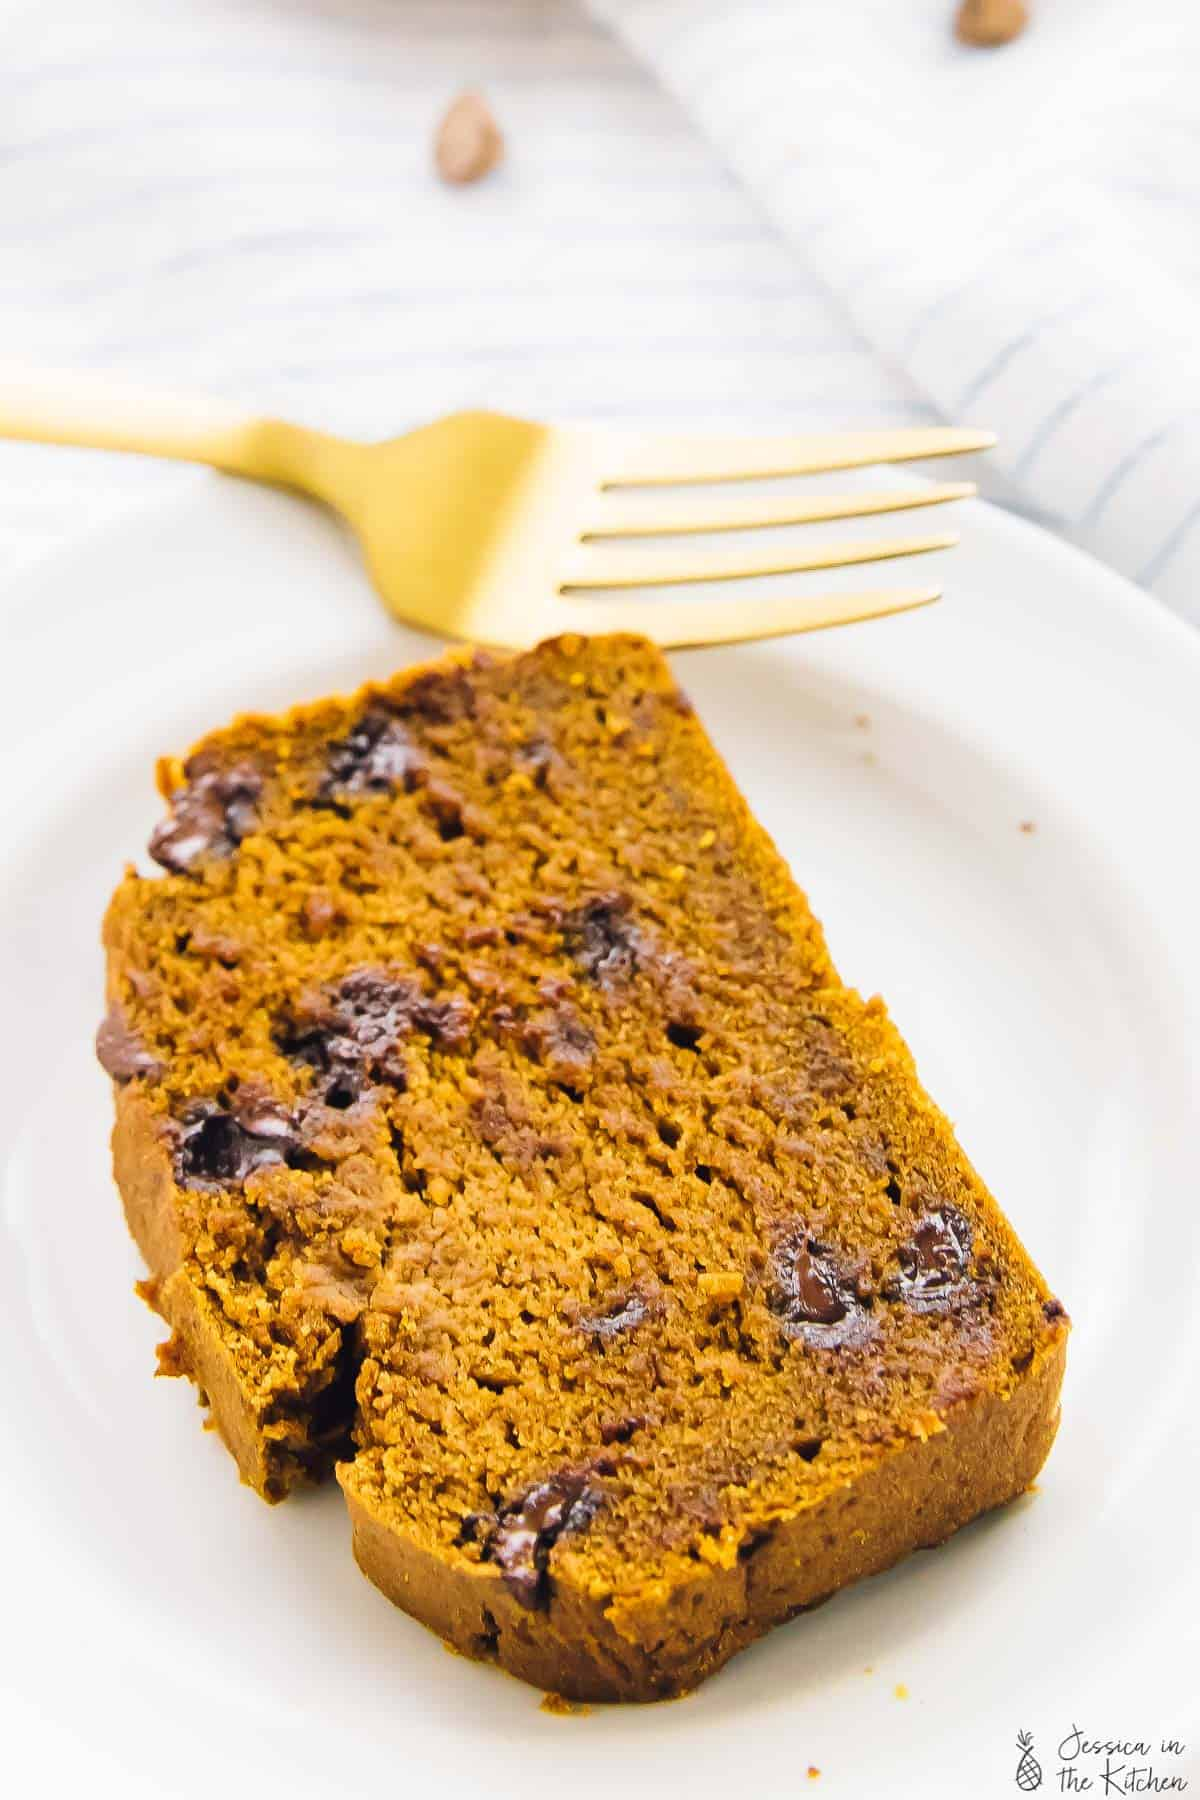 A slice of chocolate chip pumpkin bread on a plate with a gold fork on the side.